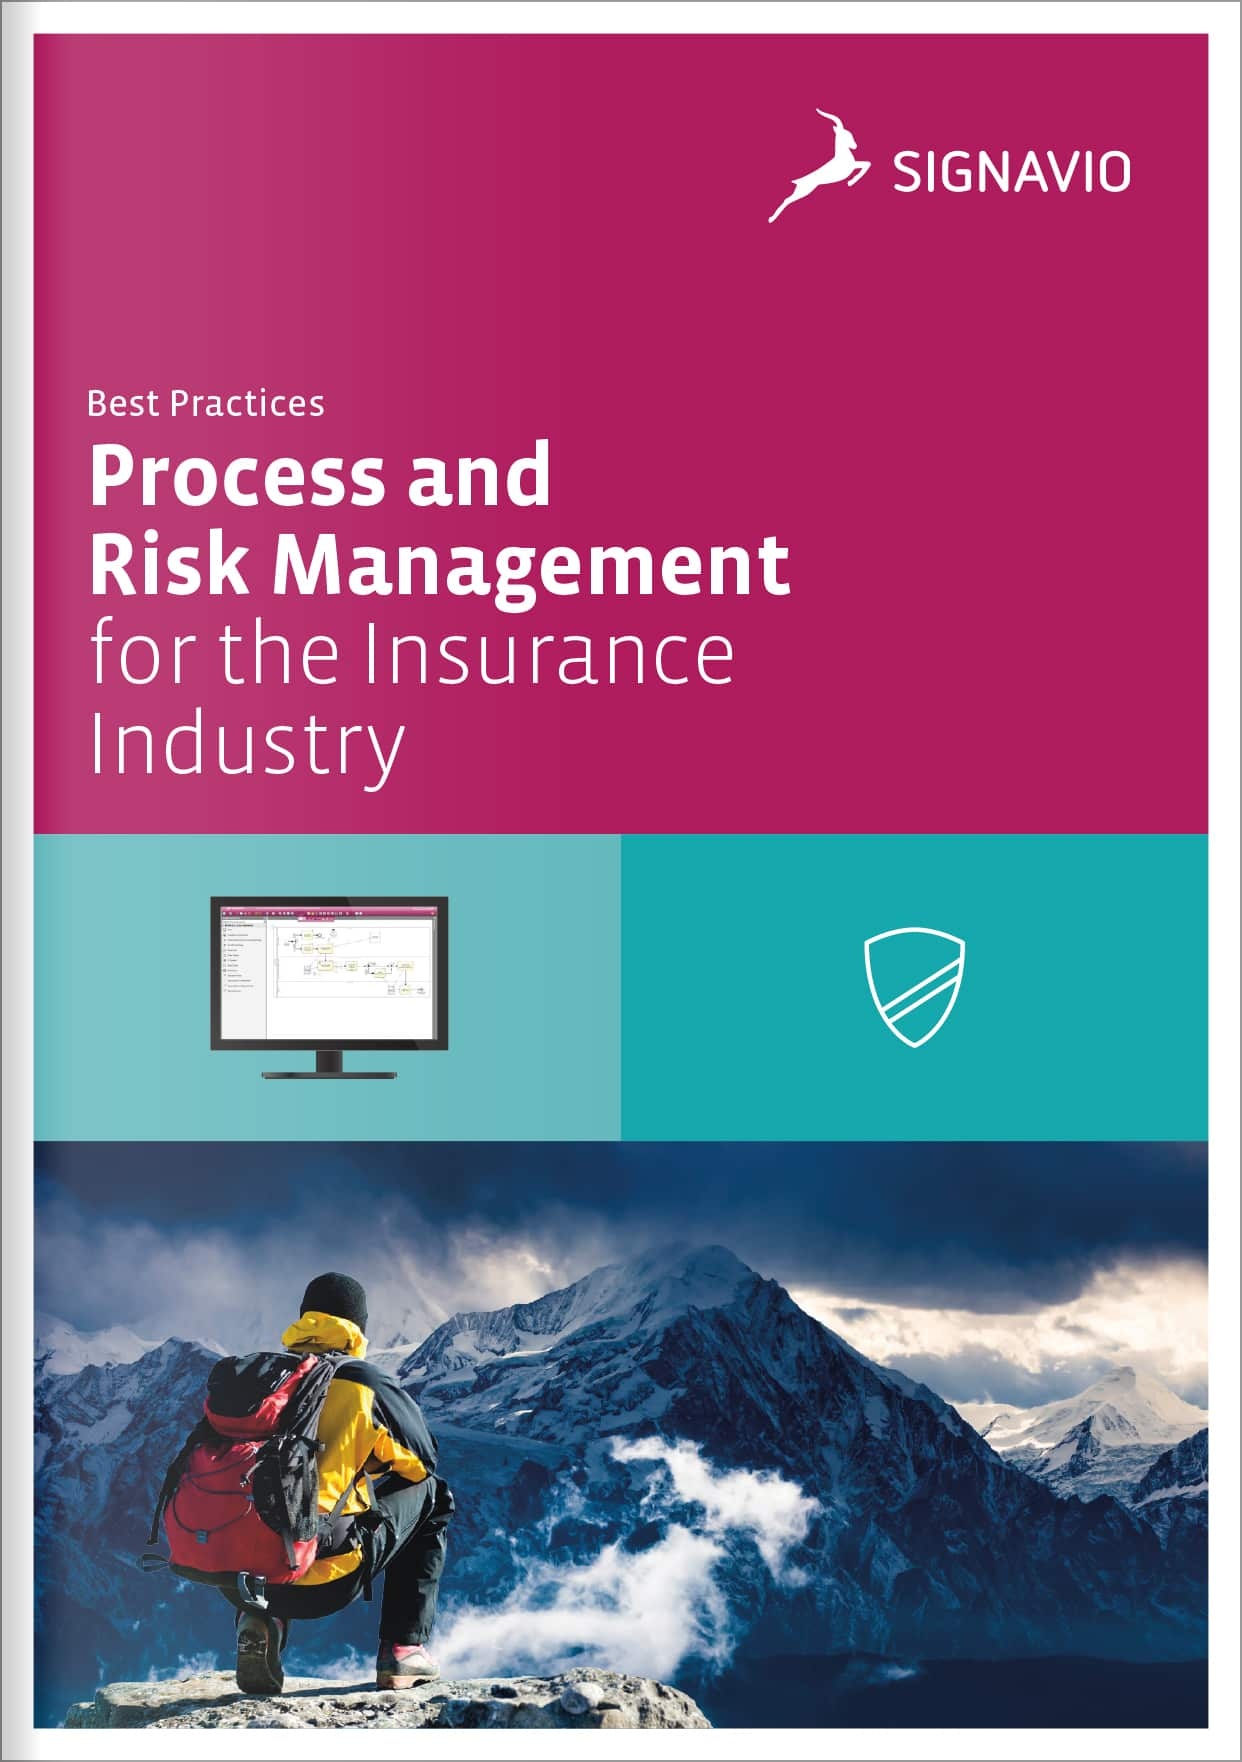 process-and-risk-management-for-the-insurance-industry-cover